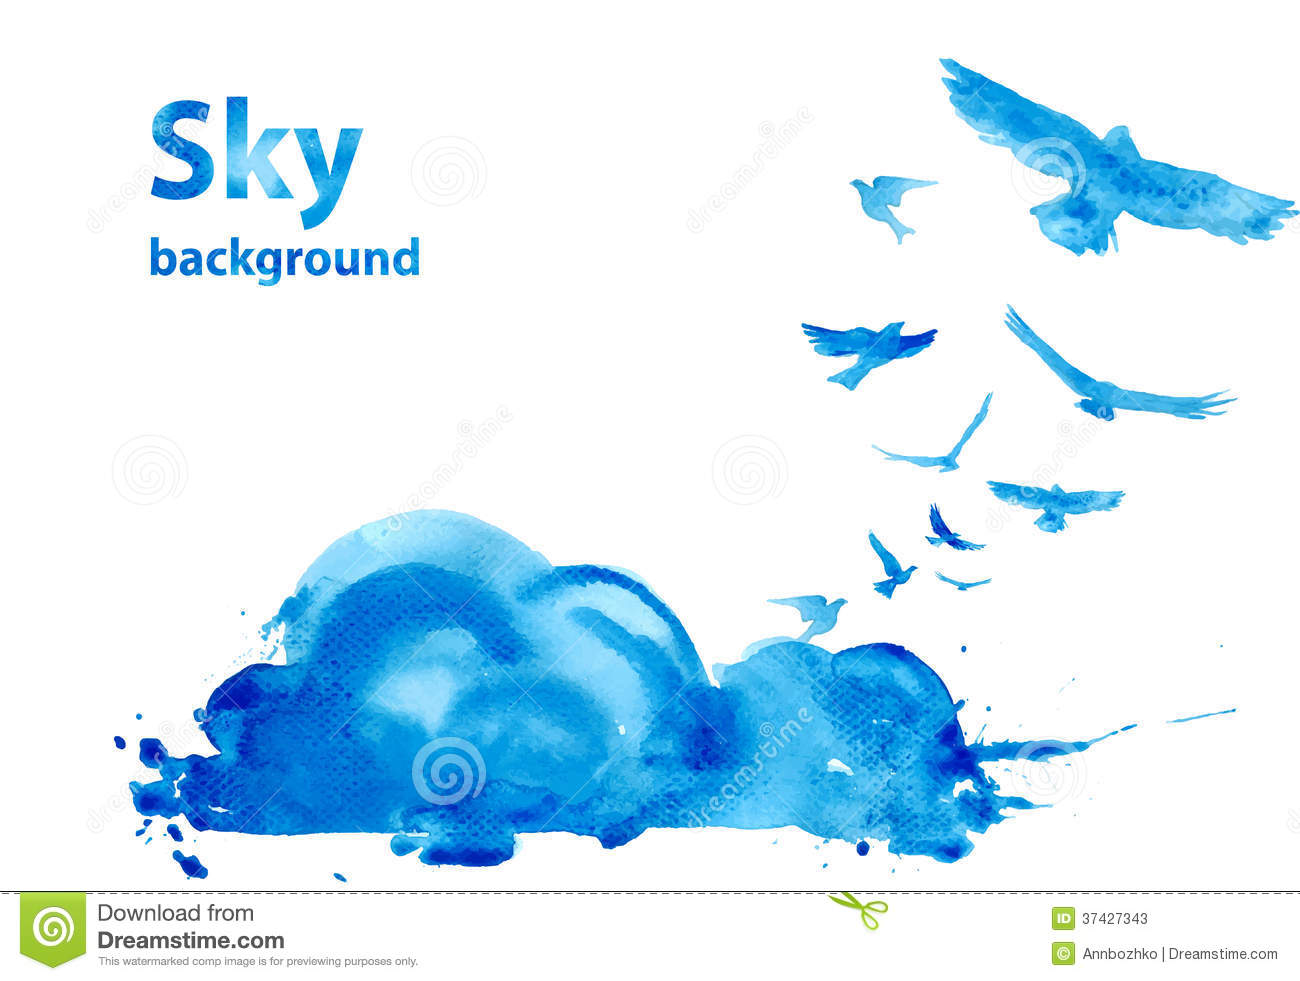 Watercolor Sky Background Stock Photos - Image: 37427343